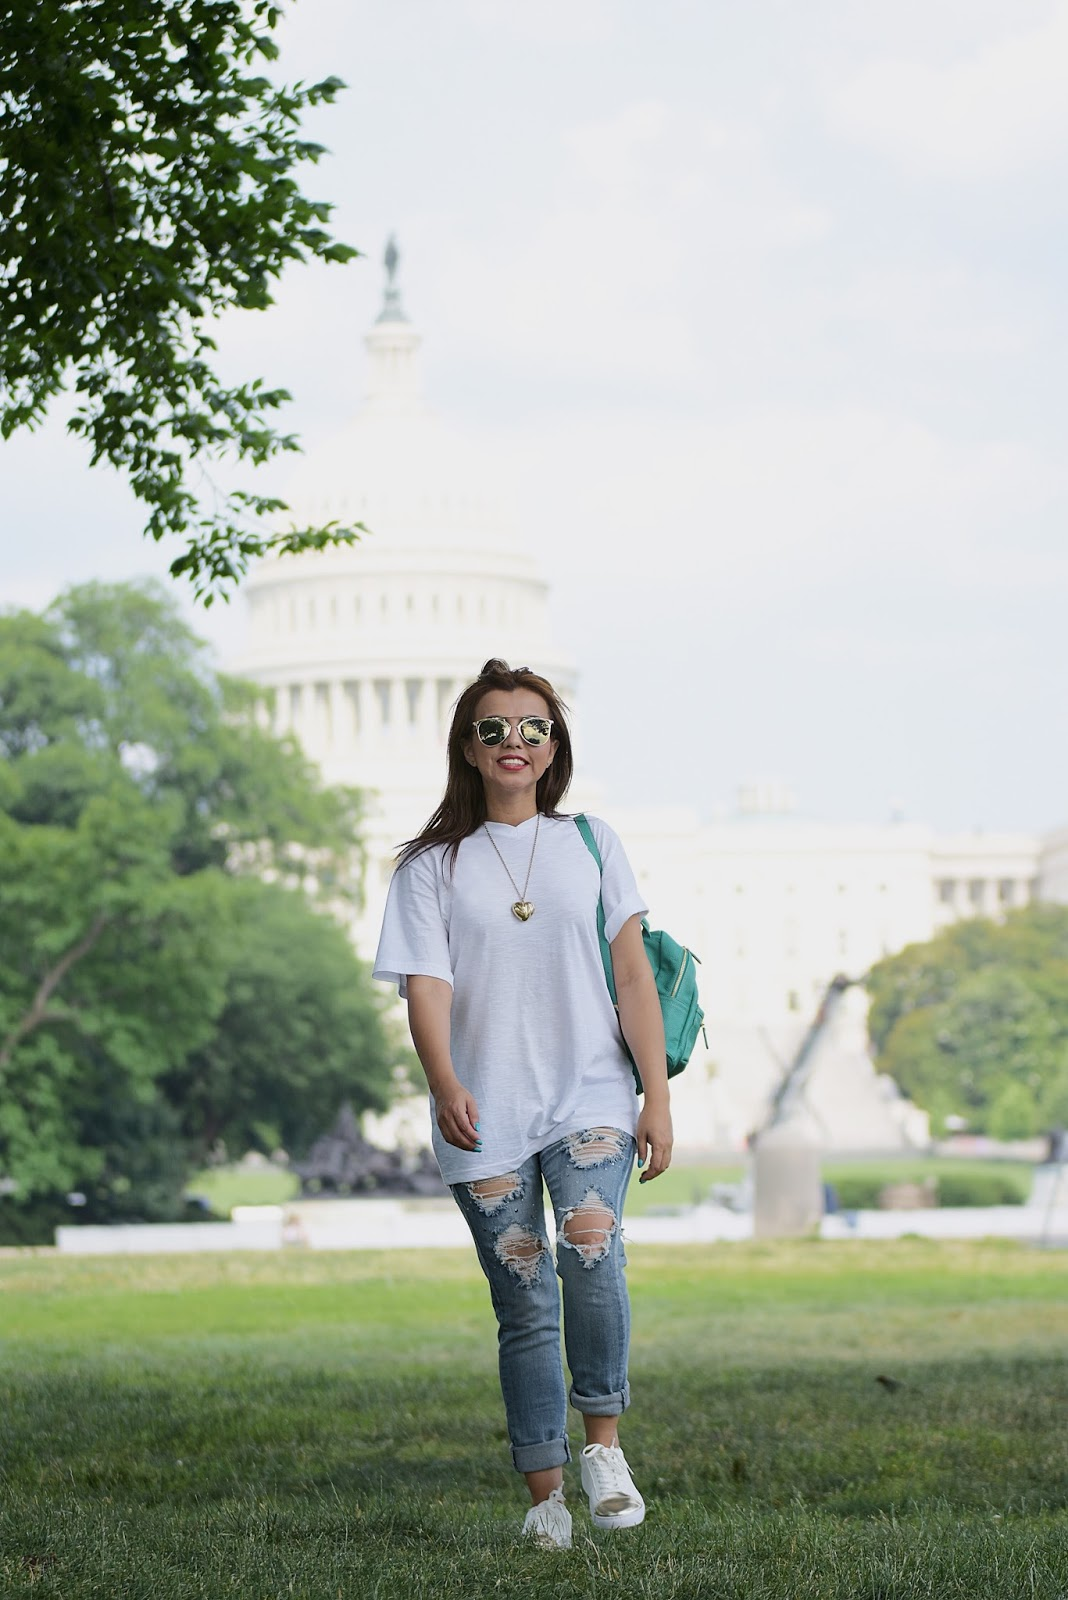 Wearing: BackPack: Fanny Love Shoes: ESPRIT T-shirt: Old Navy Jeans: Nordstrom